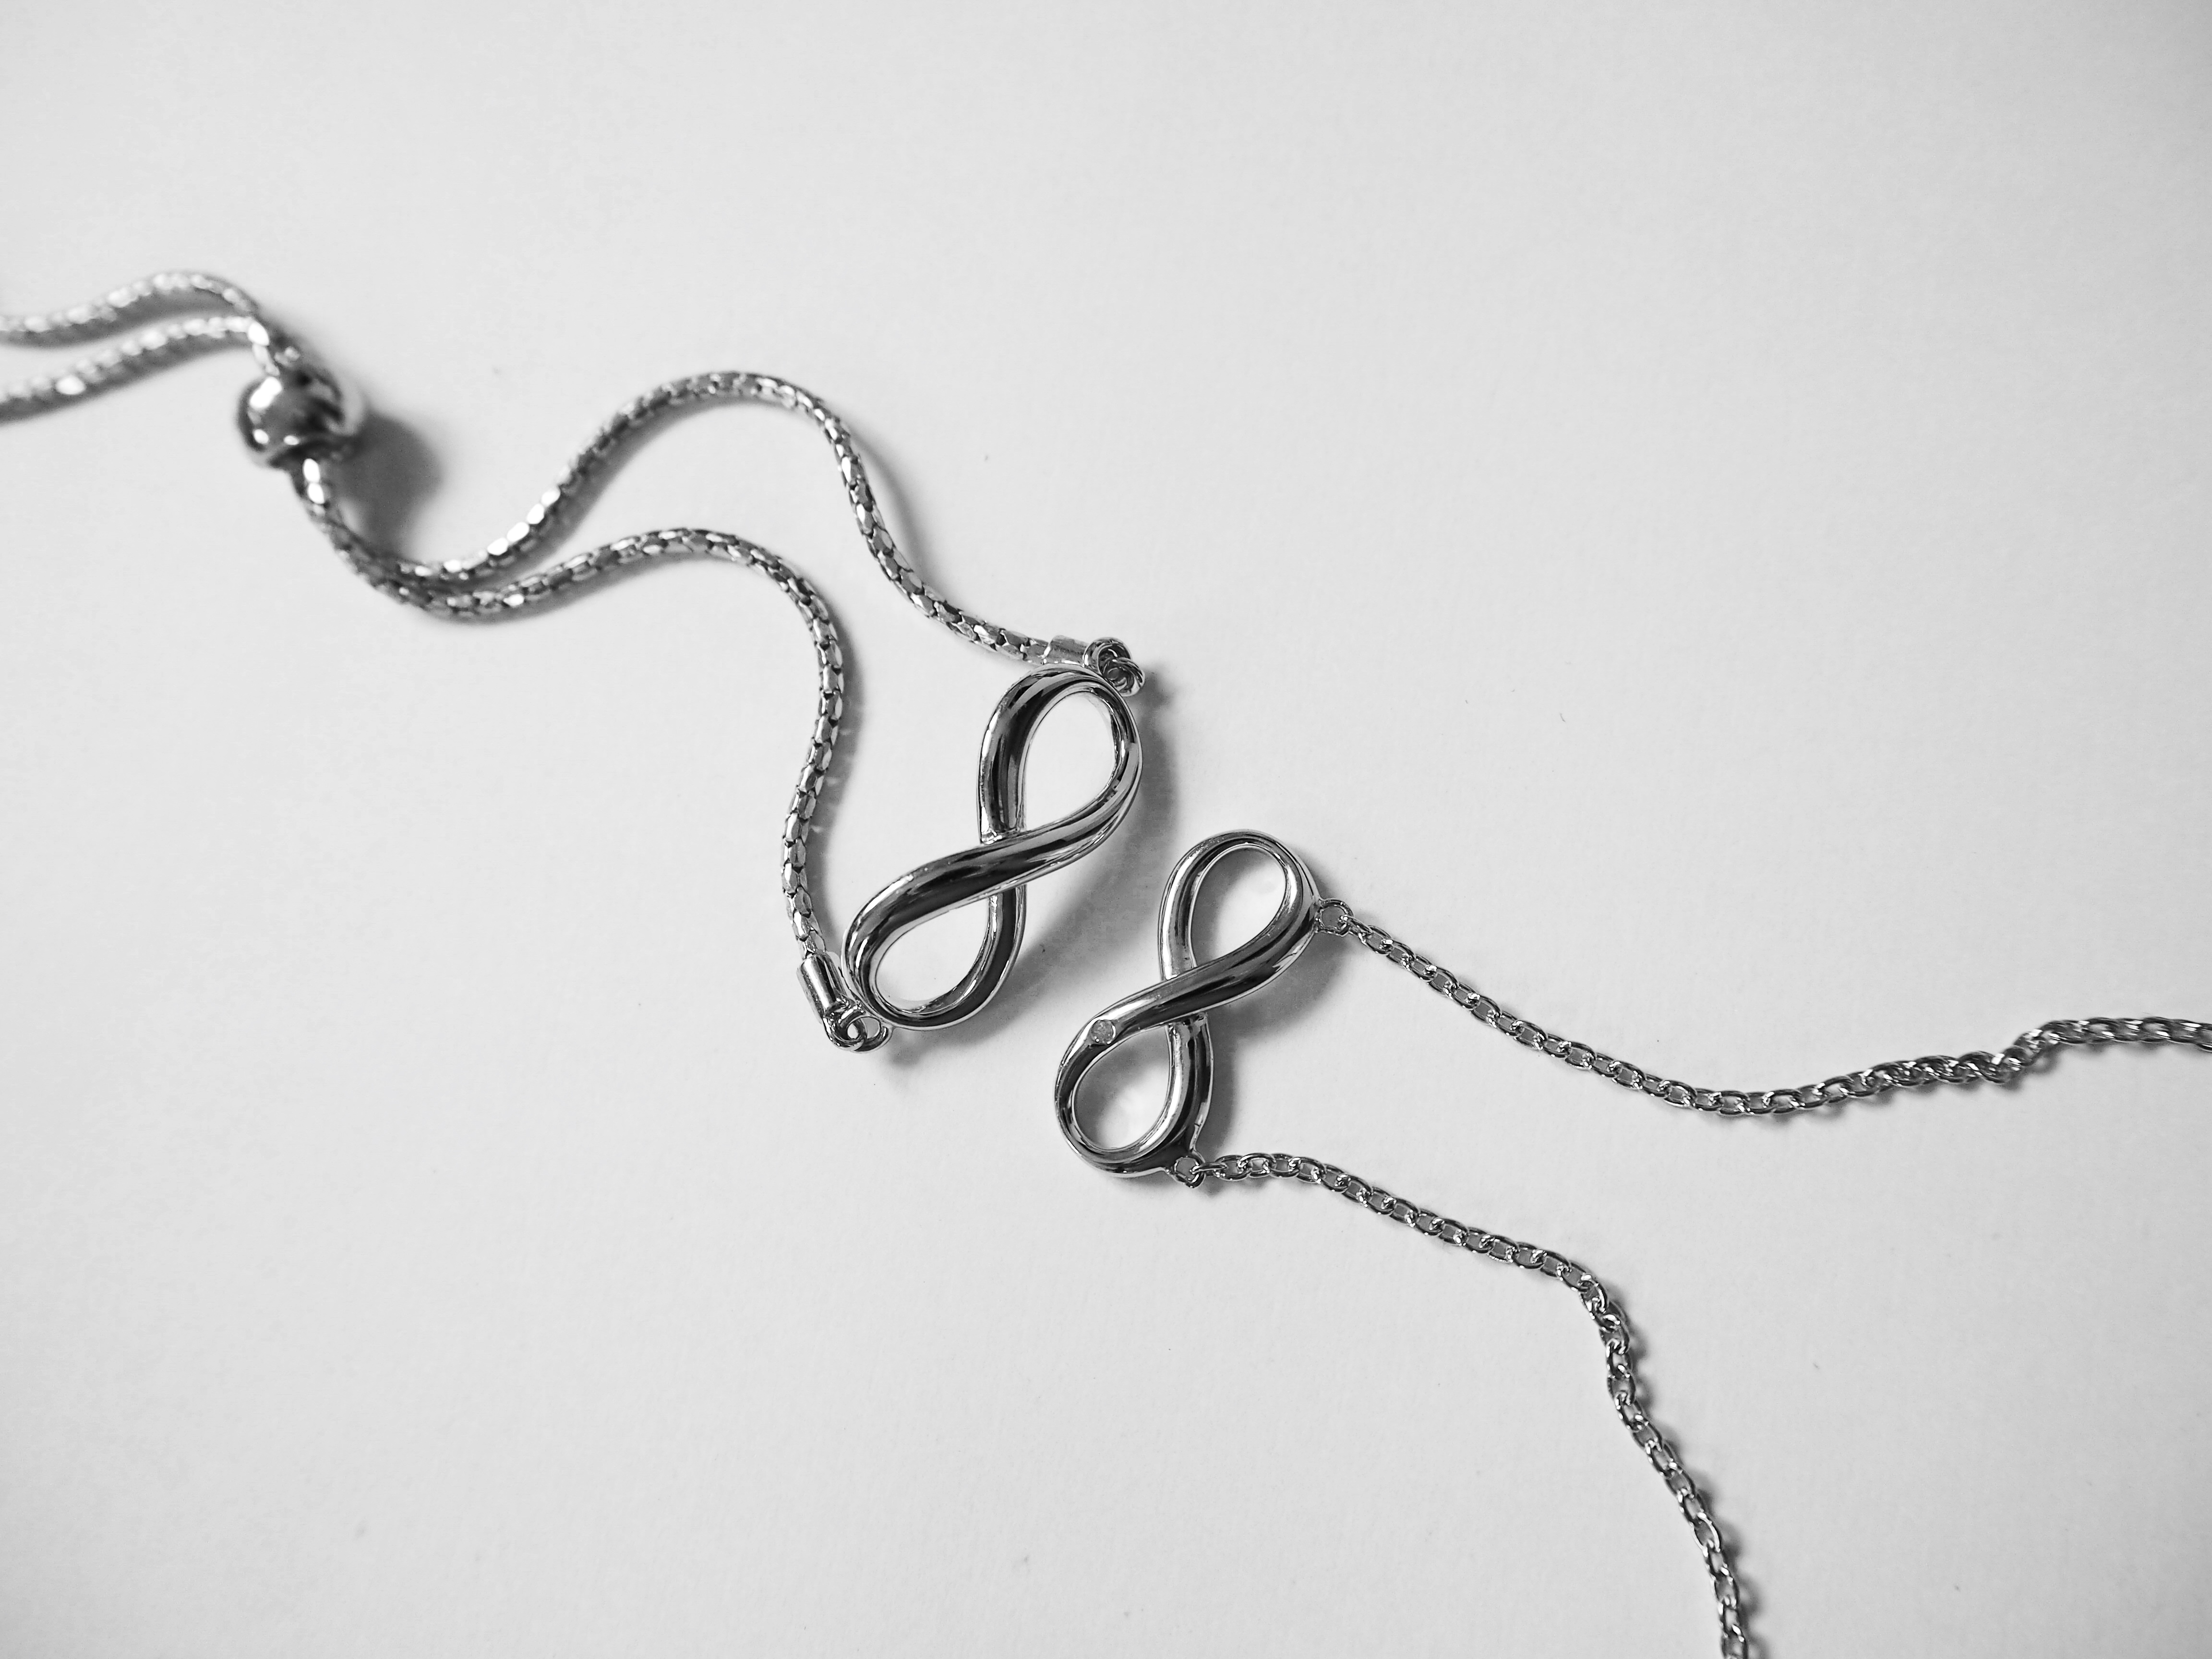 laura byrnes, lauras little locket. hot diamonds, infinity necklace, infinity bracelet,